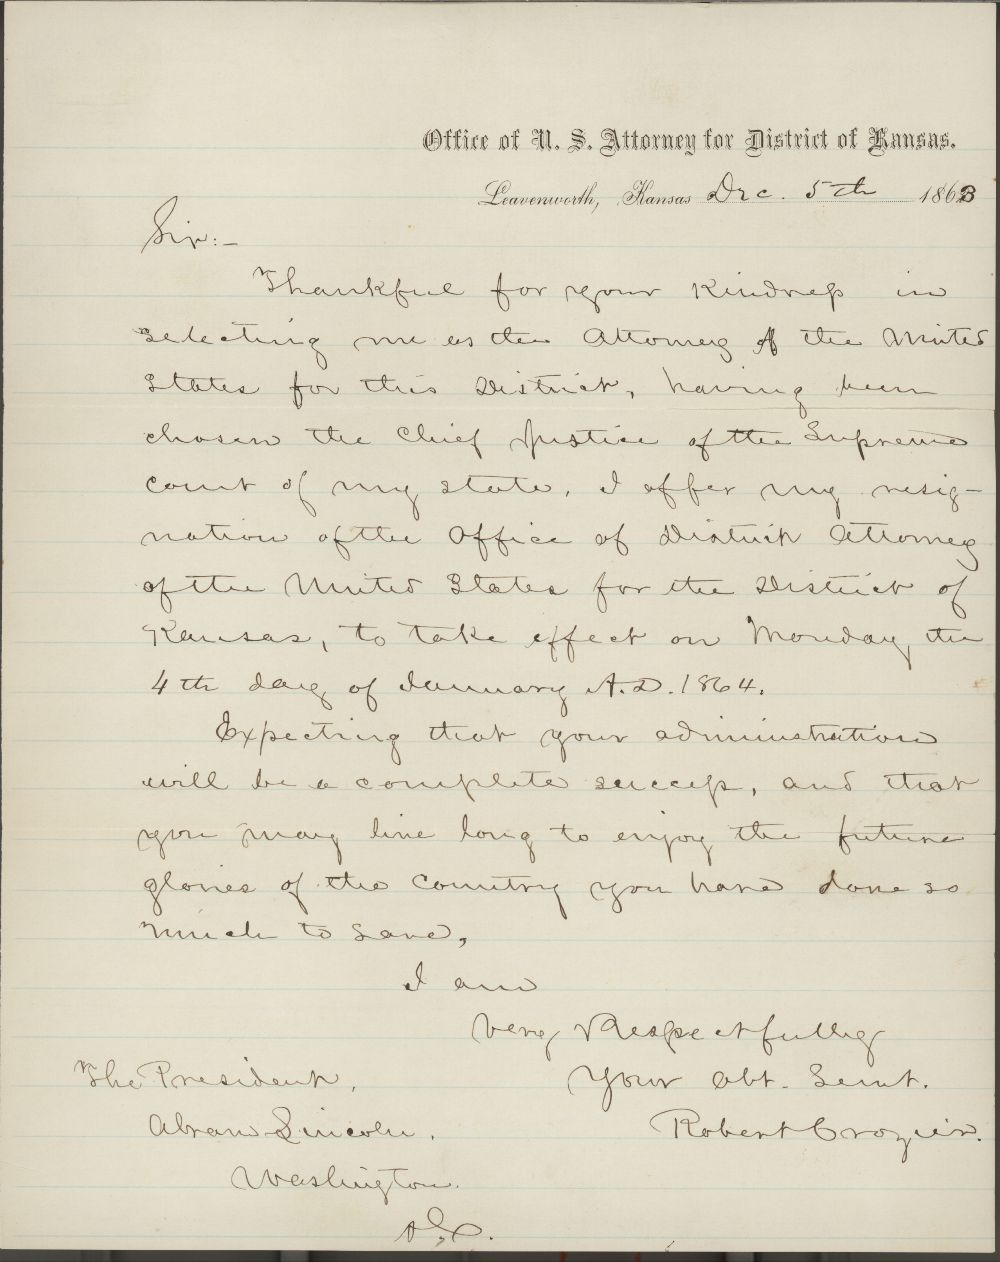 Robert Crozier to Abraham Lincoln